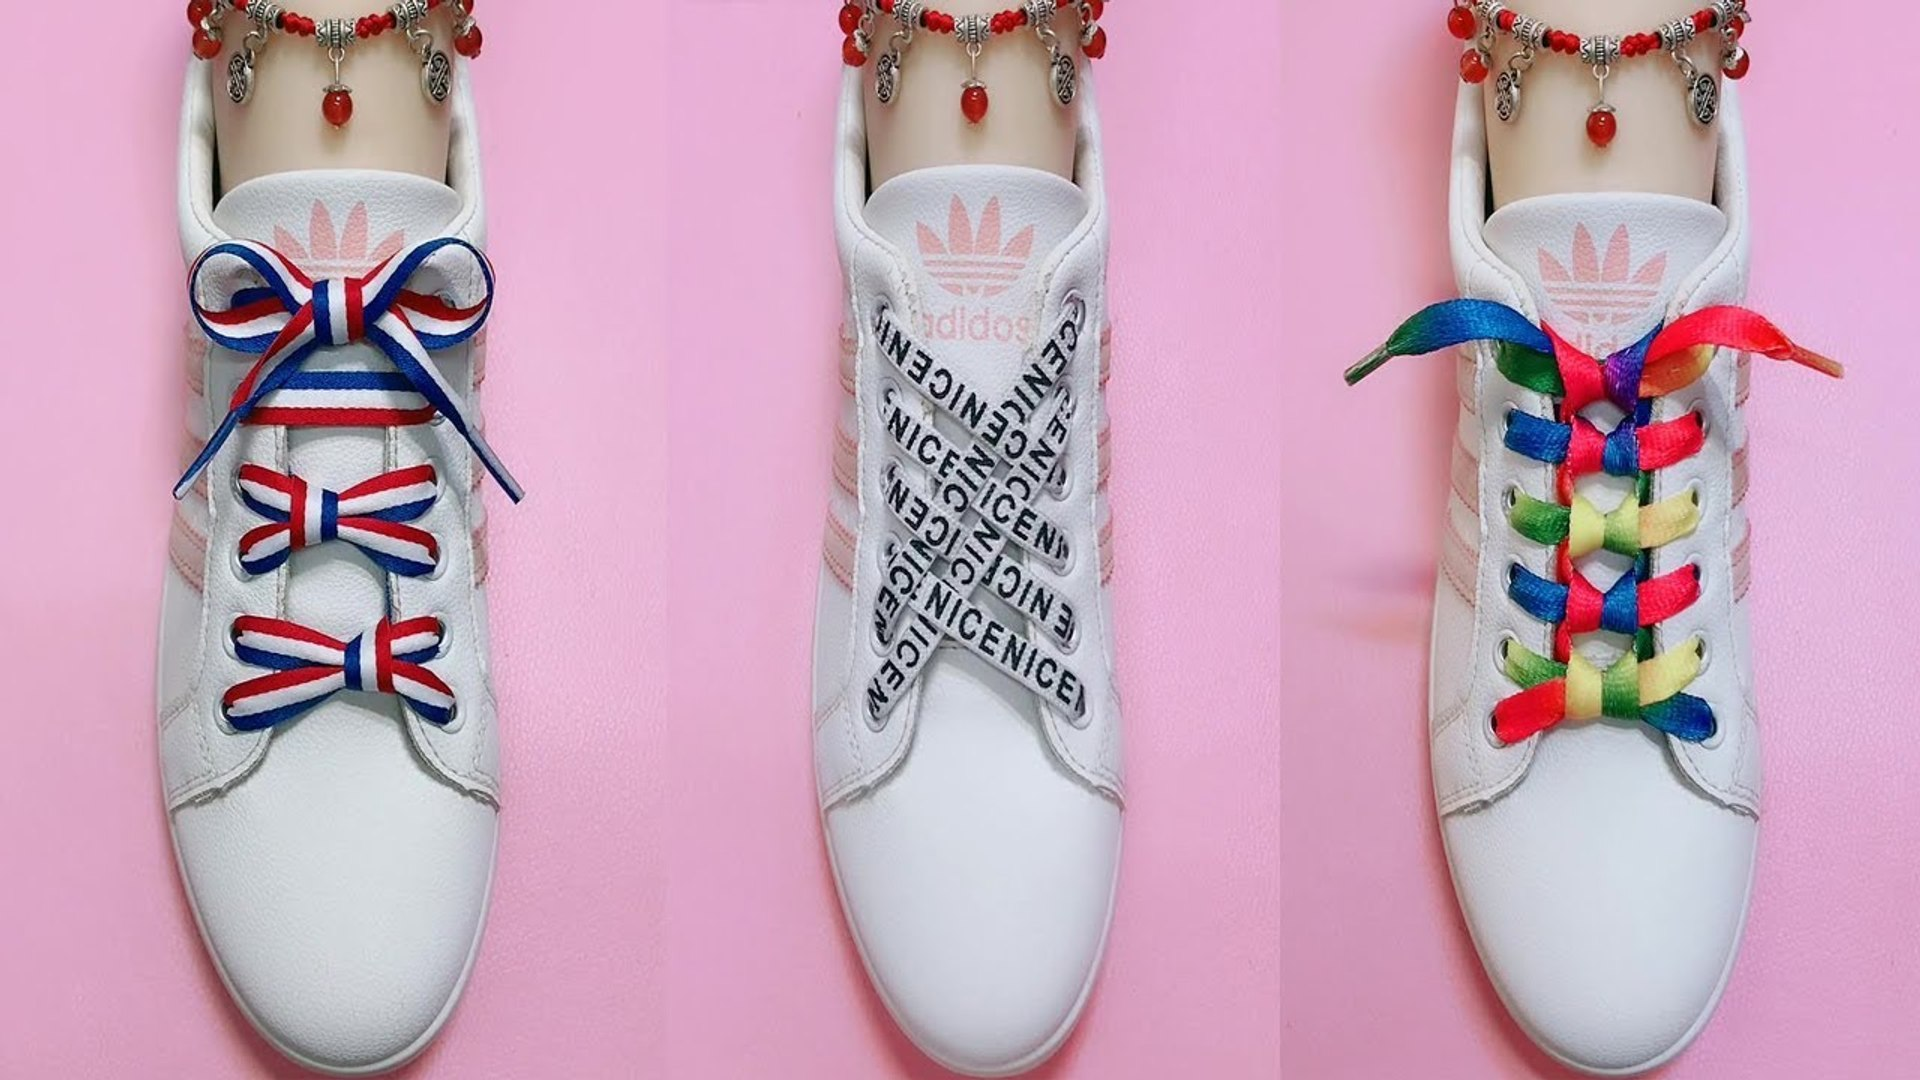 42 Creative Ways to fasten Shoelaces - Cool ideas how to tie shoe laces